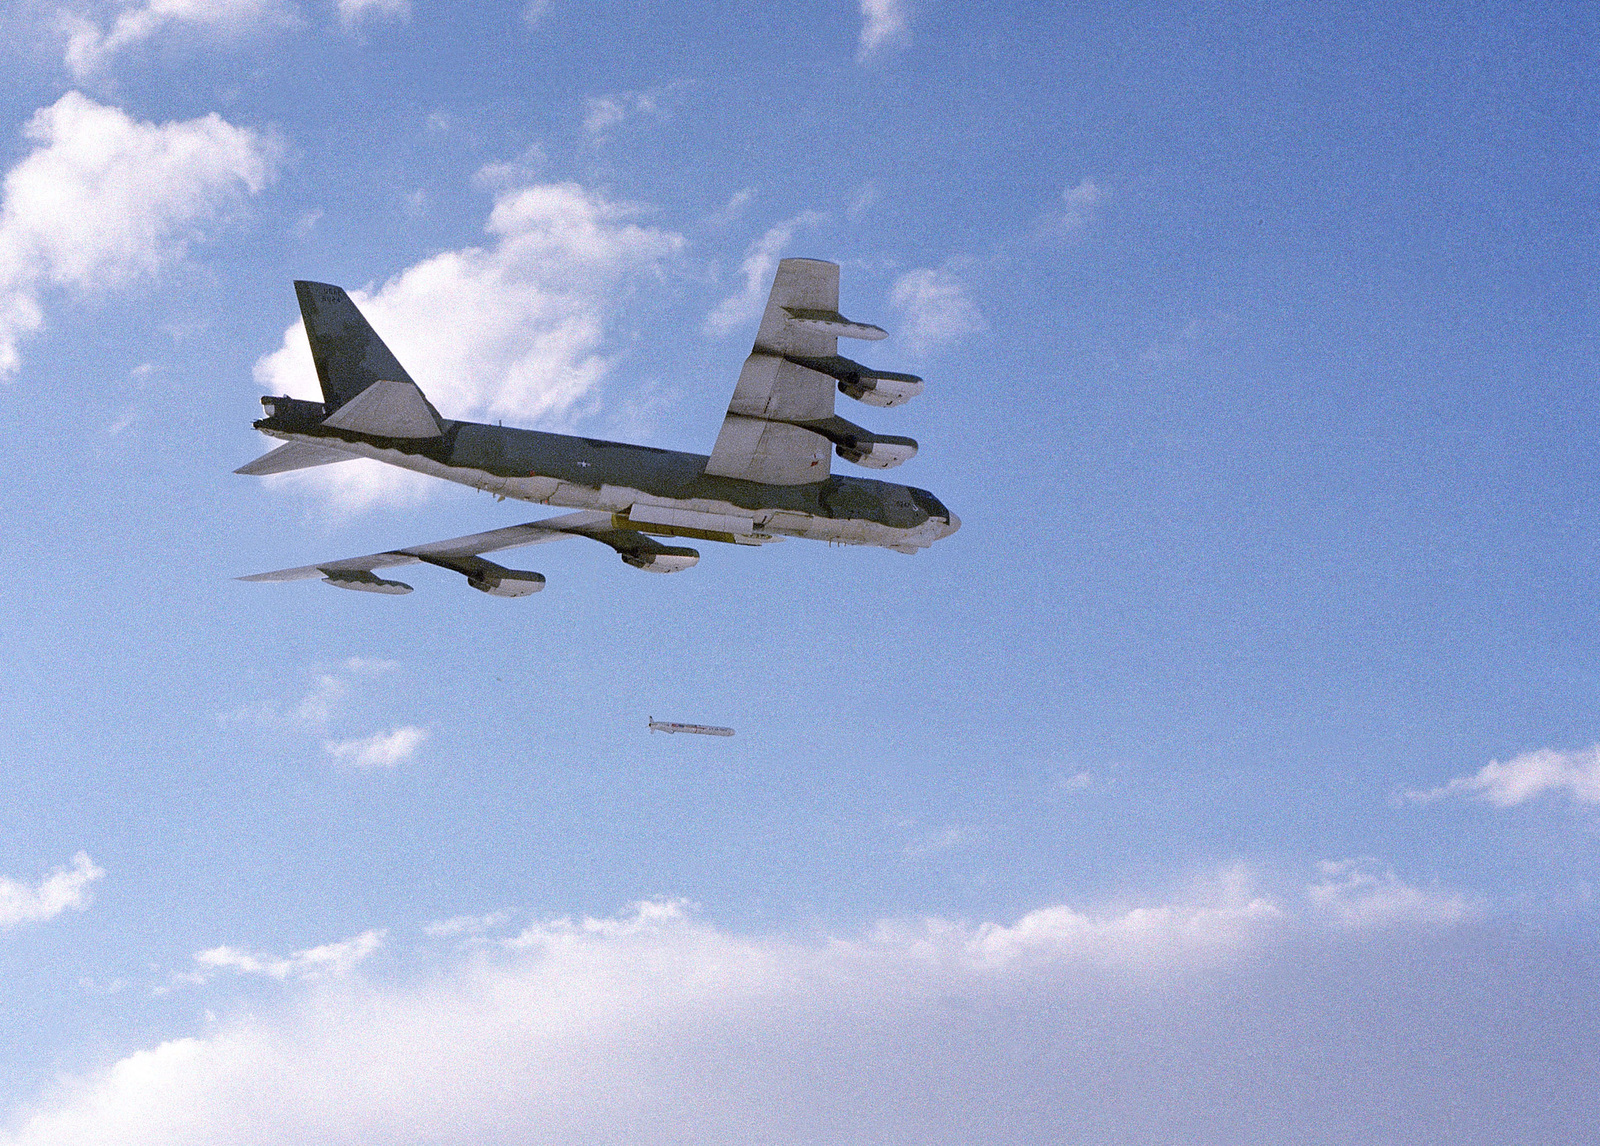 A B-52 Stratofortress aircraft drops an AGM-109 Tomahawk air-launched cruise missile while in flight